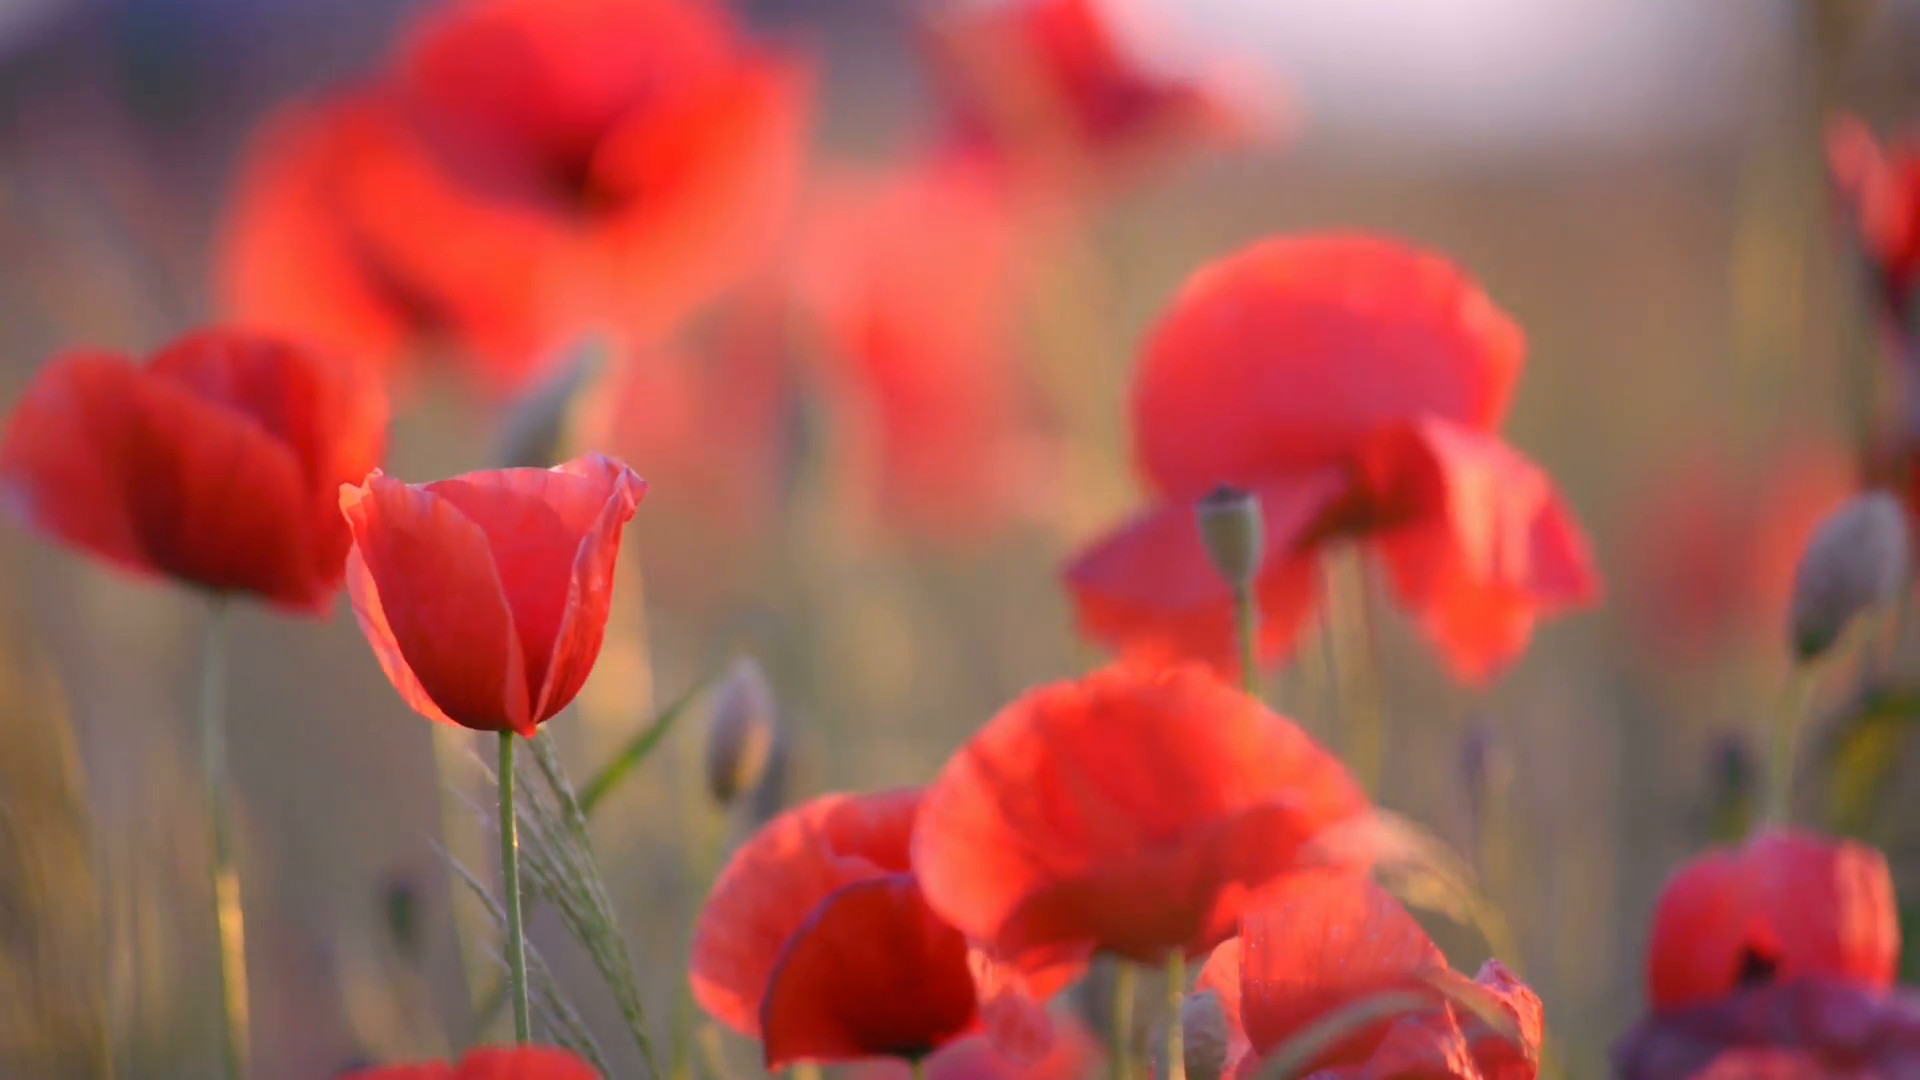 1920x1080 Poppy flowers at sunset, close-up, blurred background Stock Video Footage -  Storyblocks Video